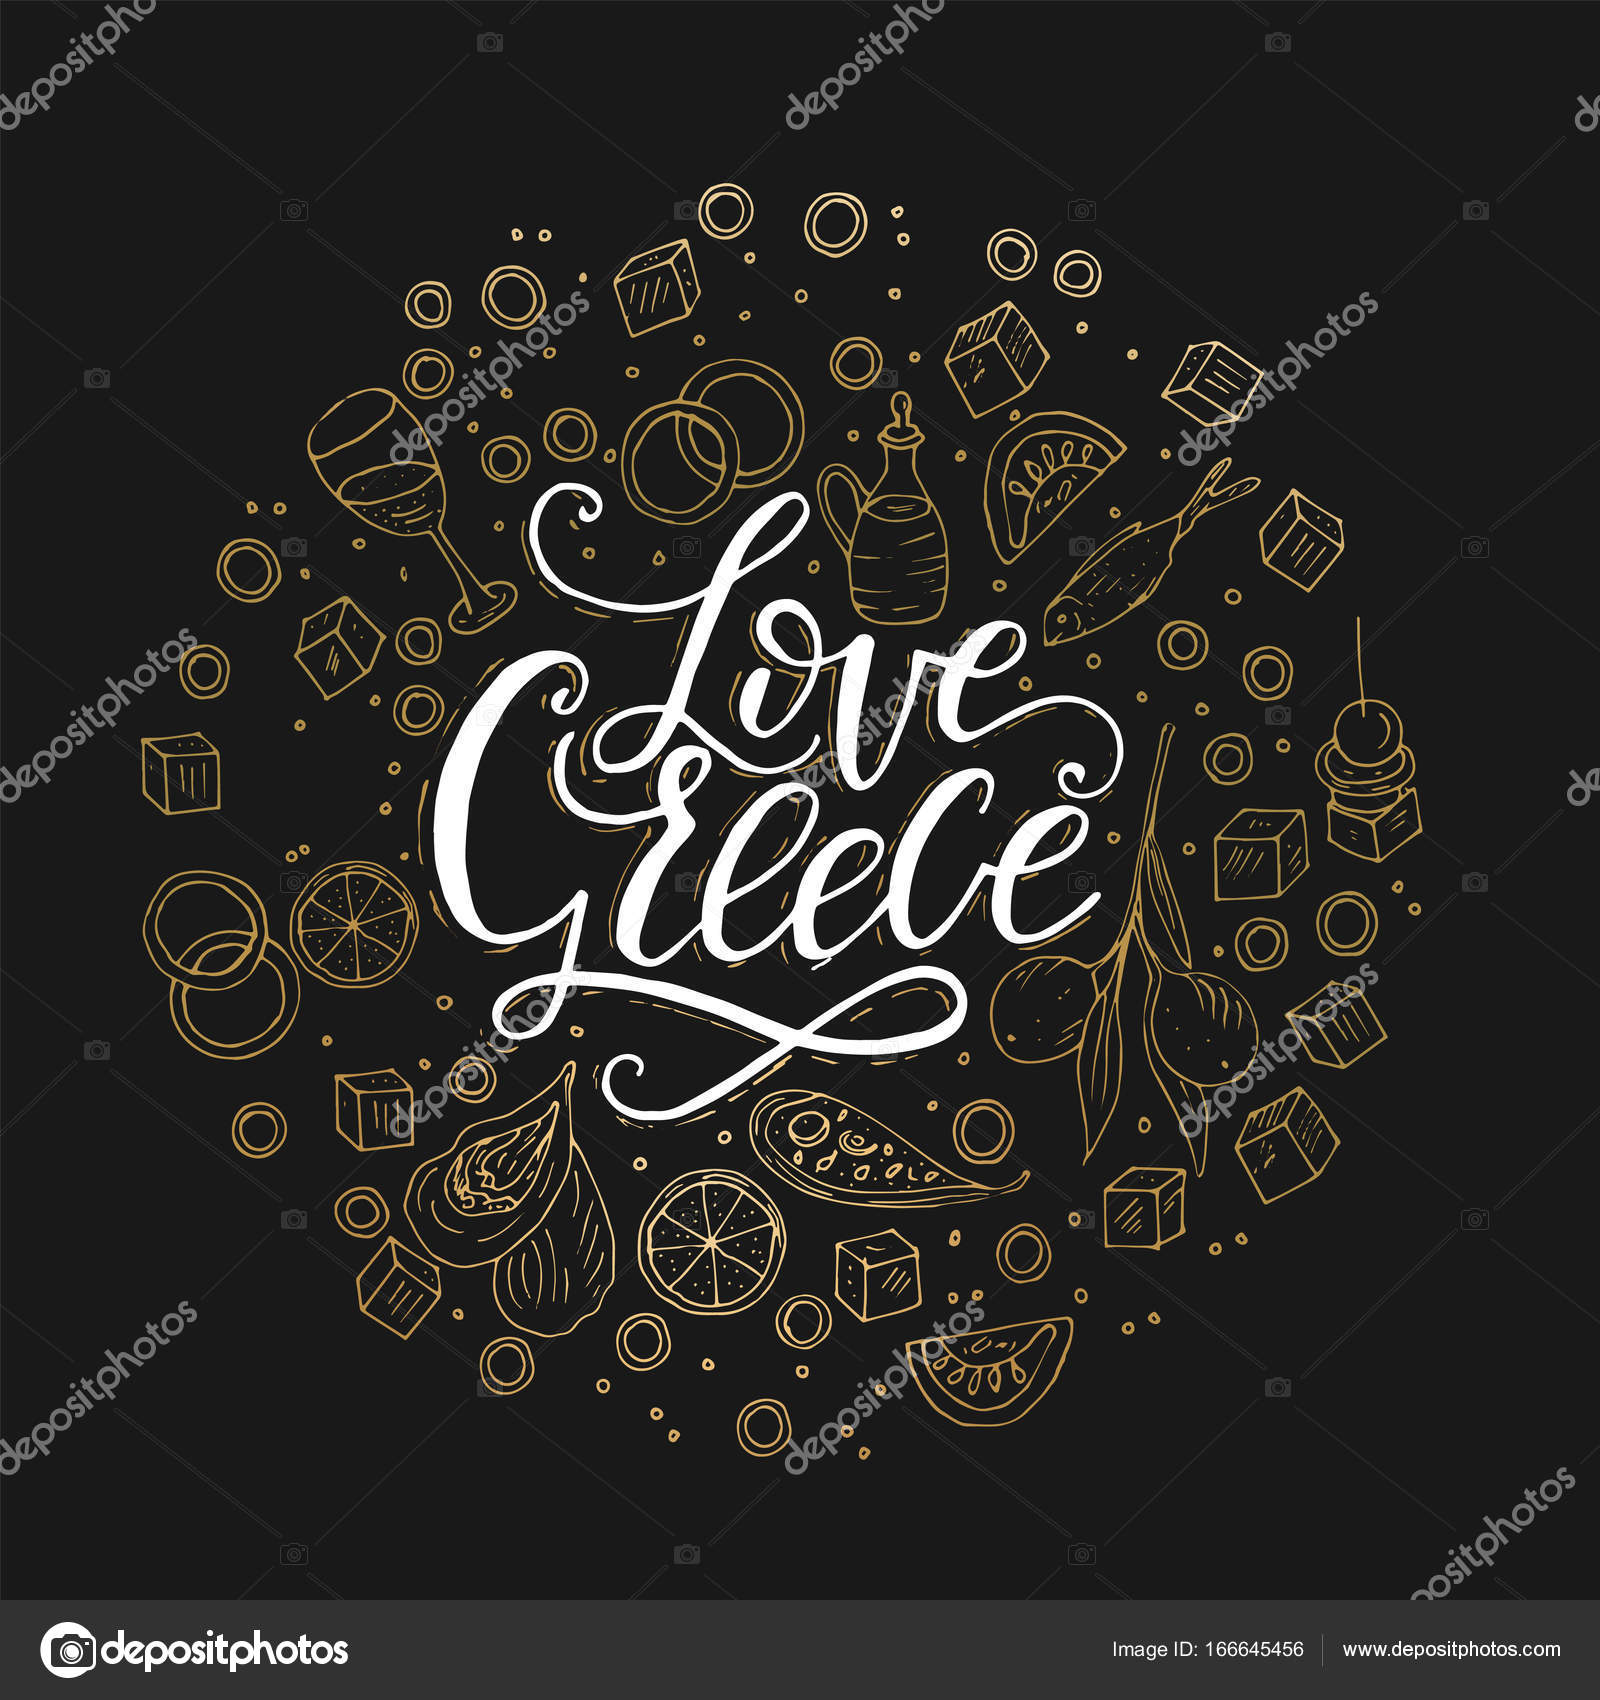 Love greece lettering handdrawn quote stock vector trihubova love greece lettering handdrawn quote with doodle symbols of national greek cuisine vector by trihubovaail biocorpaavc Image collections